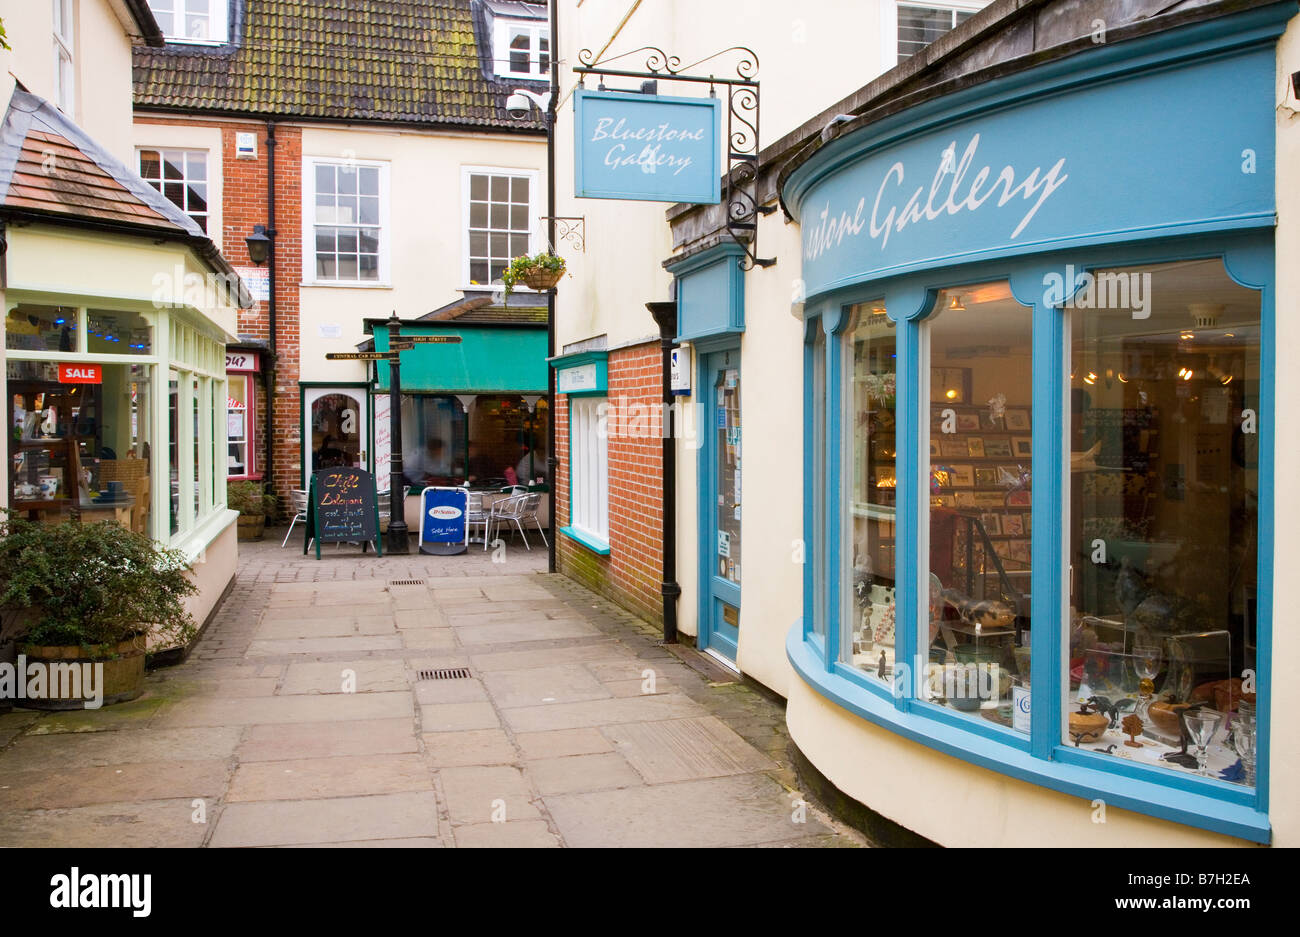 Old Swan Yard an alleyway of boutique shops and cafes in the typical English market town of Devizes Wiltshire England - Stock Image